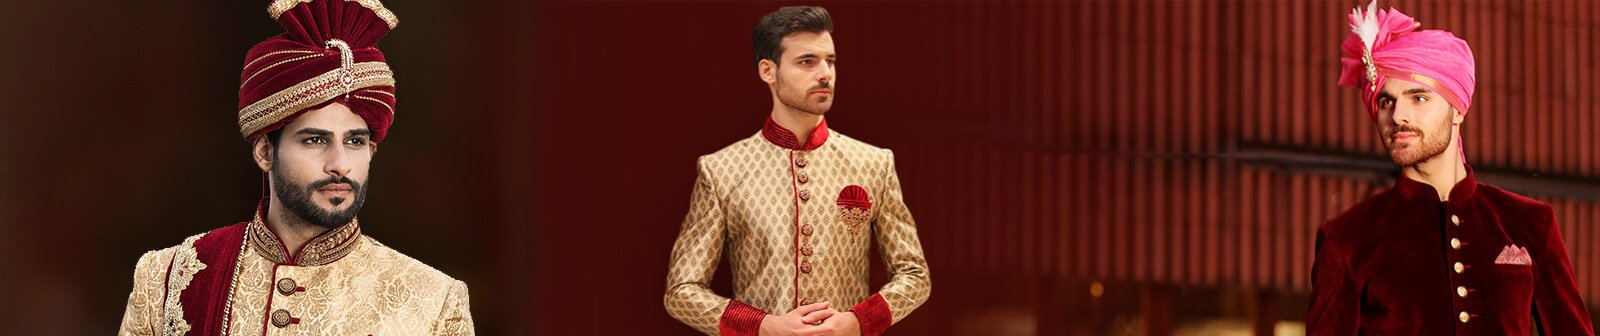 Groom Dresses in Hyderabad